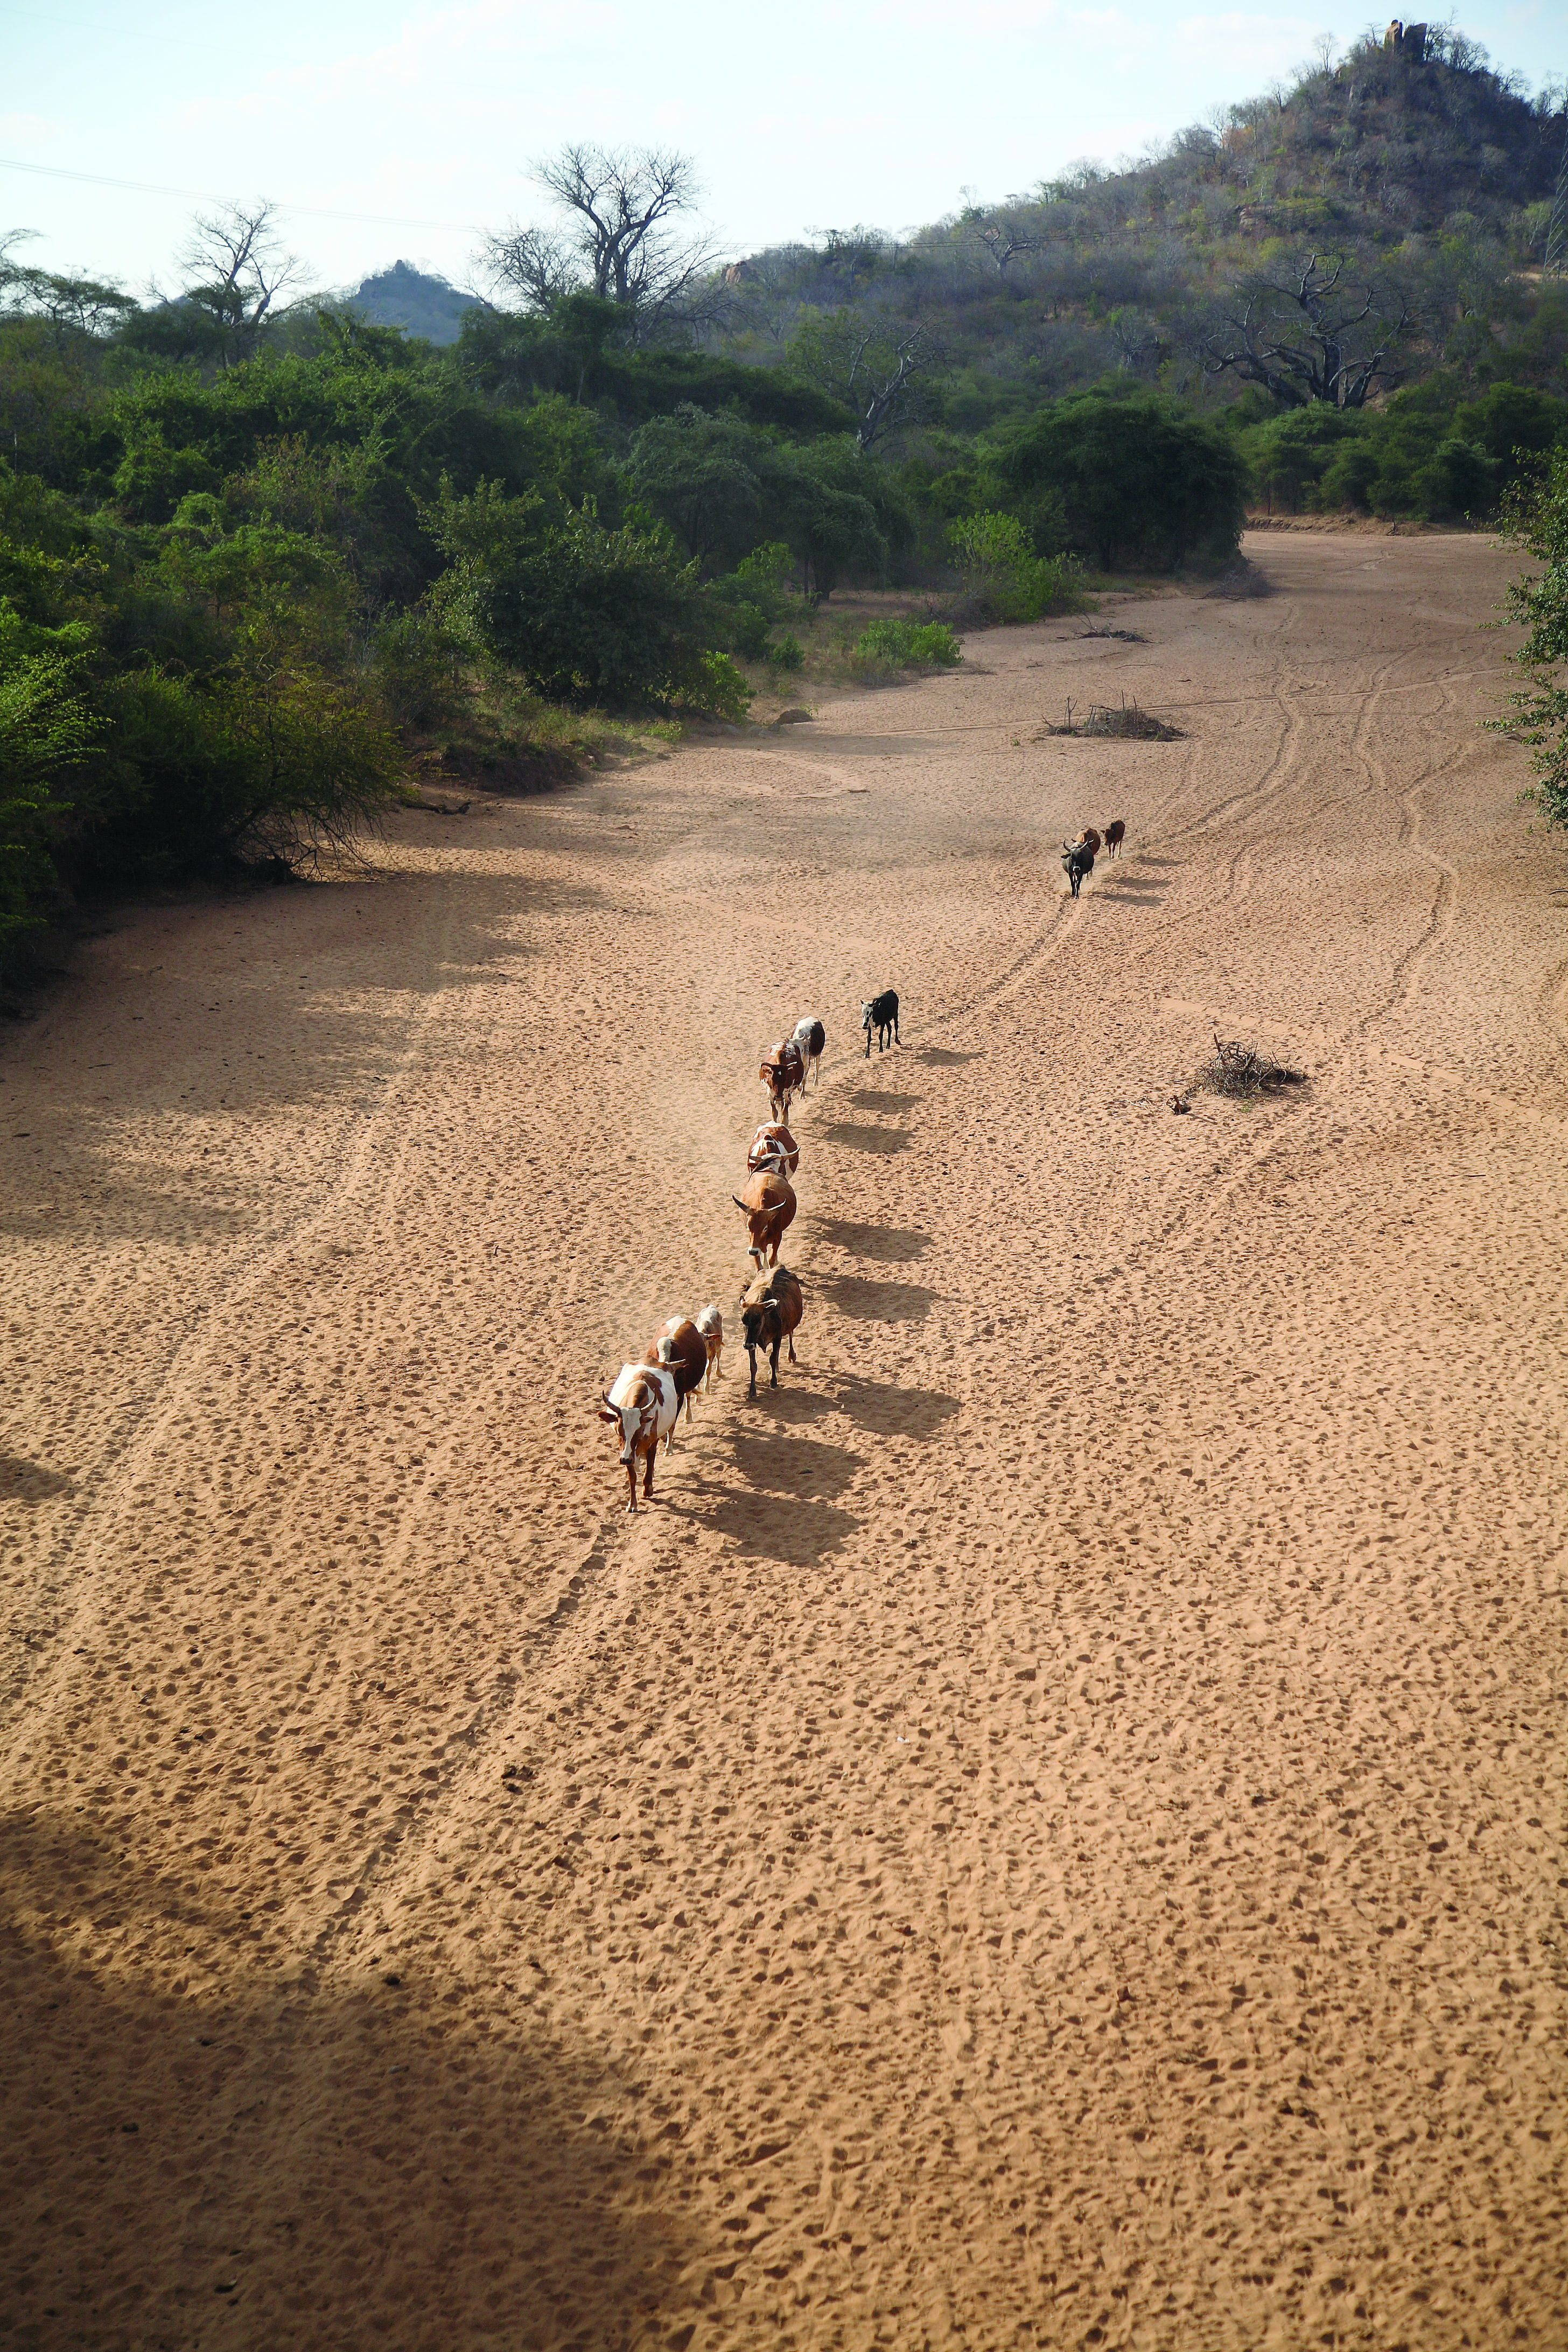 Dry river bed, Mozambique, 2008. Source: Wikimedia Commons.